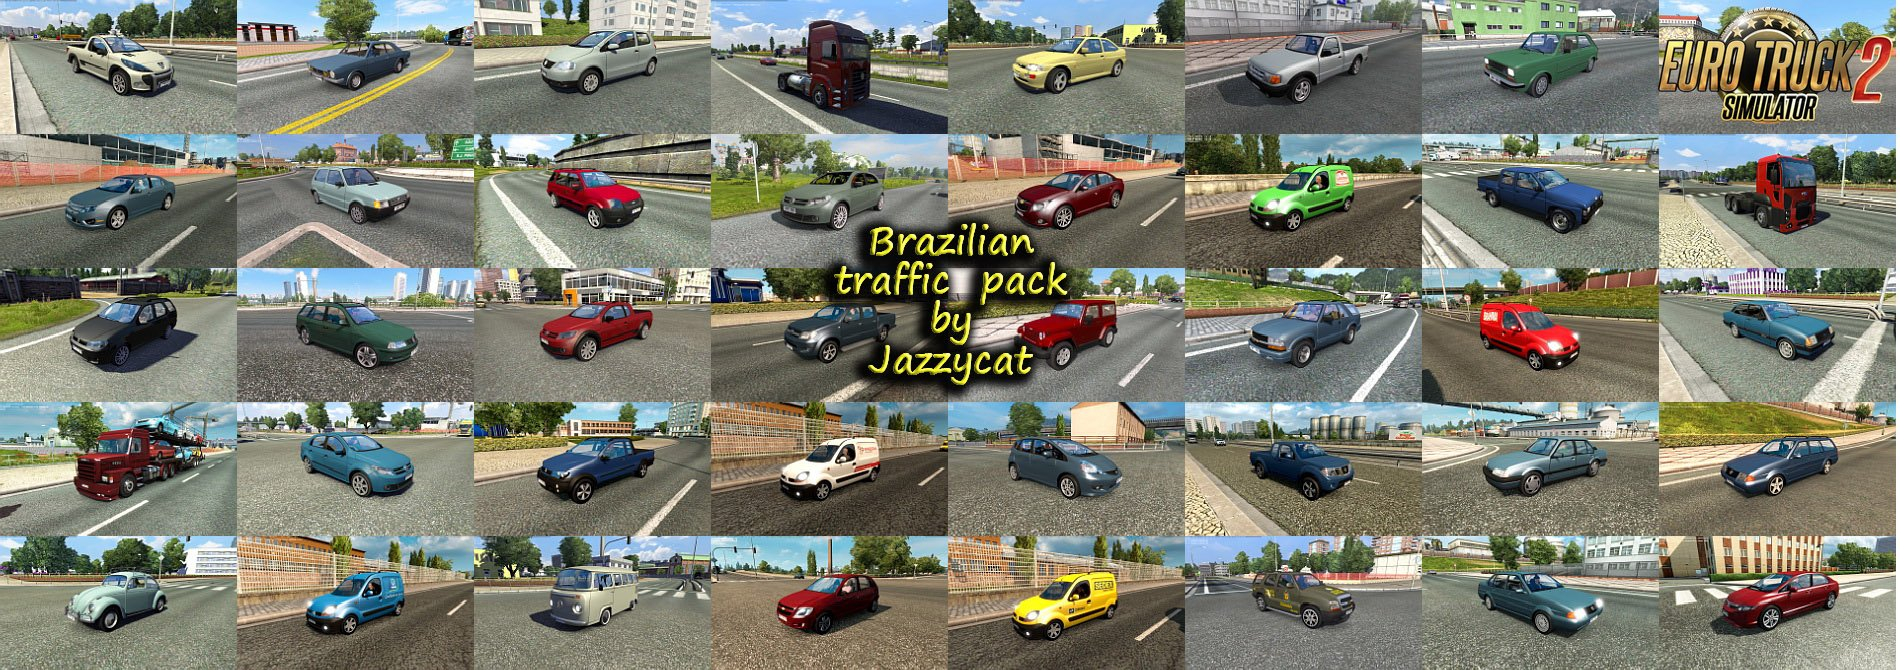 Brazilian Traffic Pack v2.2.1 by Jazzycat